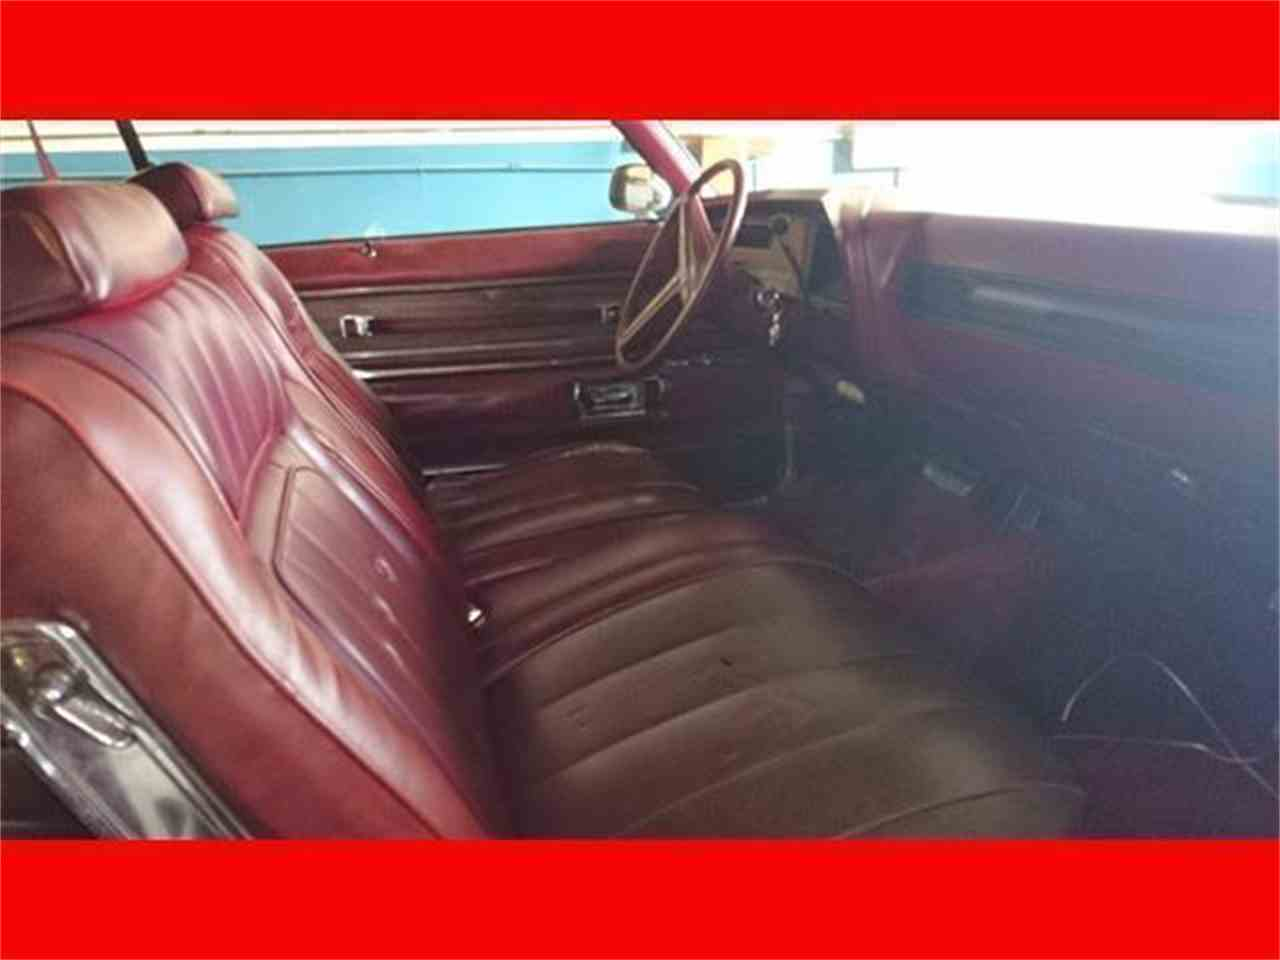 Large Picture of 1972 Buick RivieraBoat Tail located in Los Angeles California - $12,000.00 Offered by Sassy Motorsports Inc. - JCVM